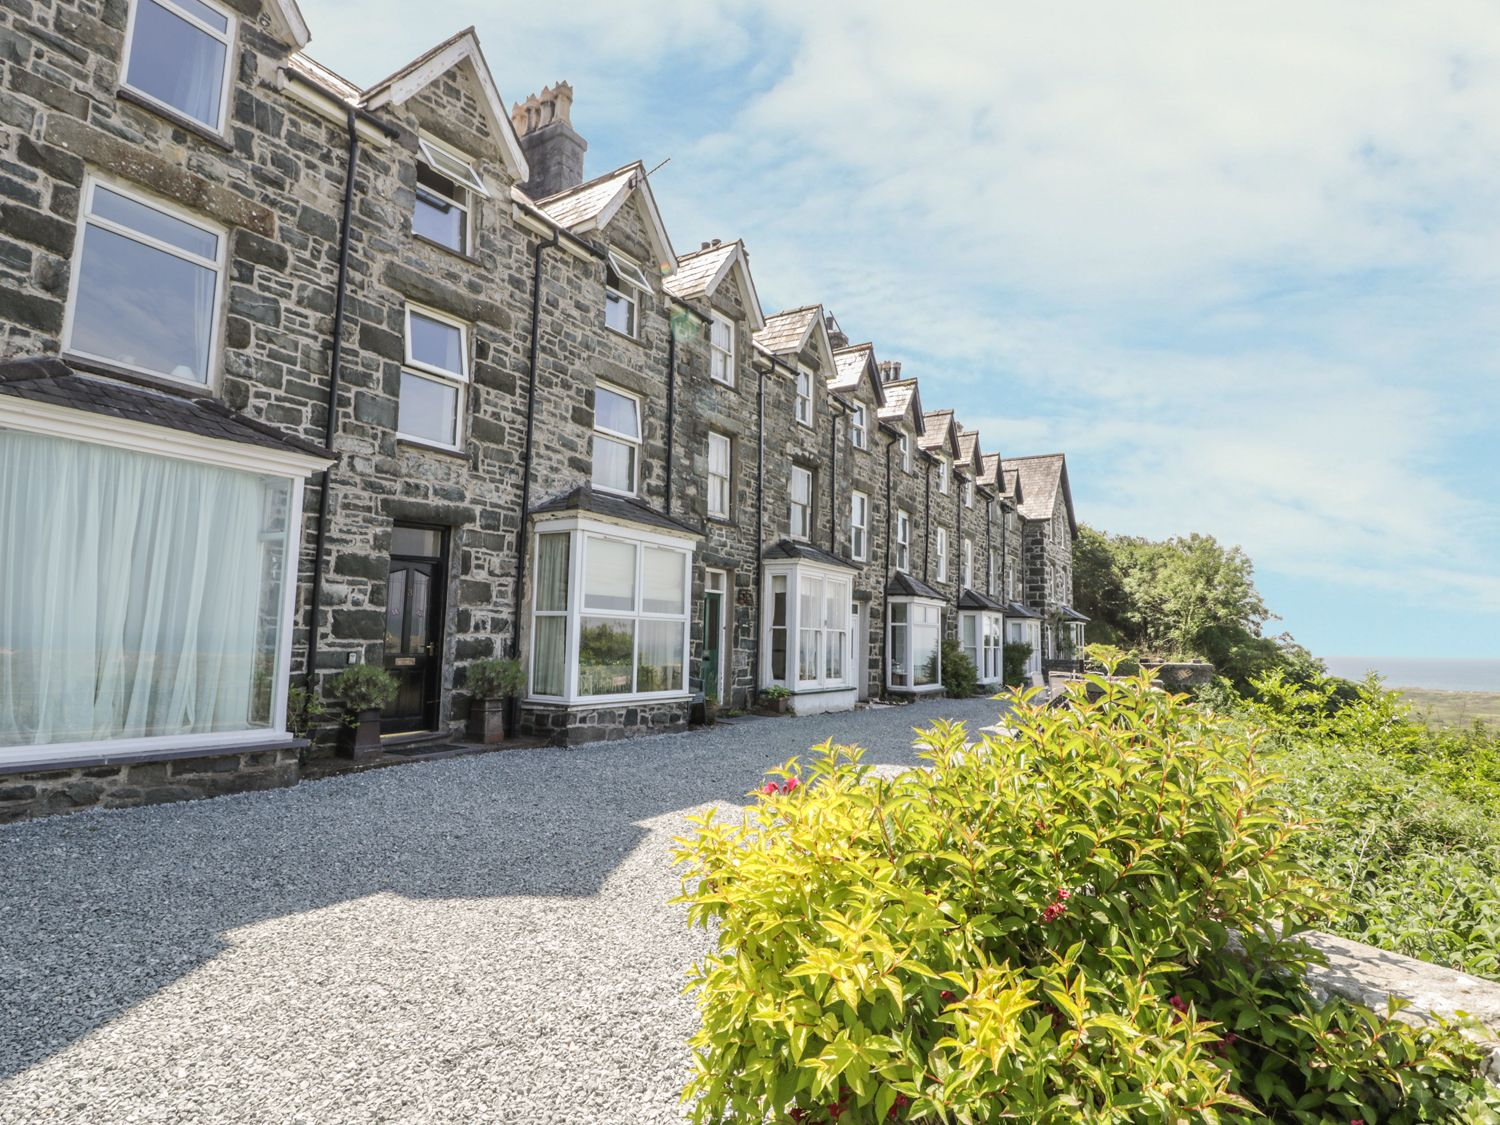 3 Bronwen Terrace - North Wales - 914283 - photo 1